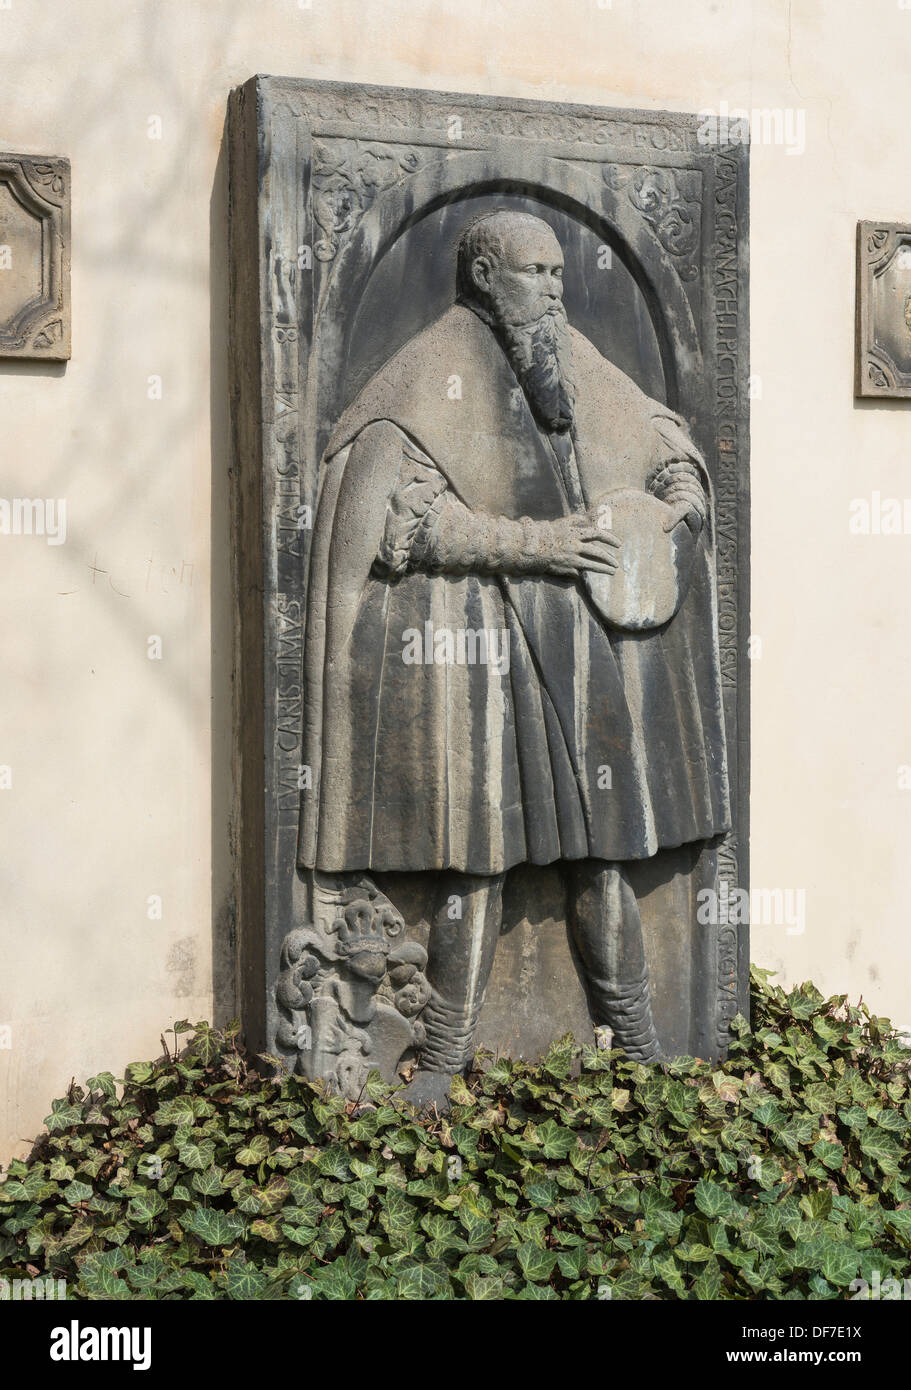 Lucas Cranach the Elder, grave slab with a relief of the painter, placed on the wall of the Church of St. James, - Stock Image